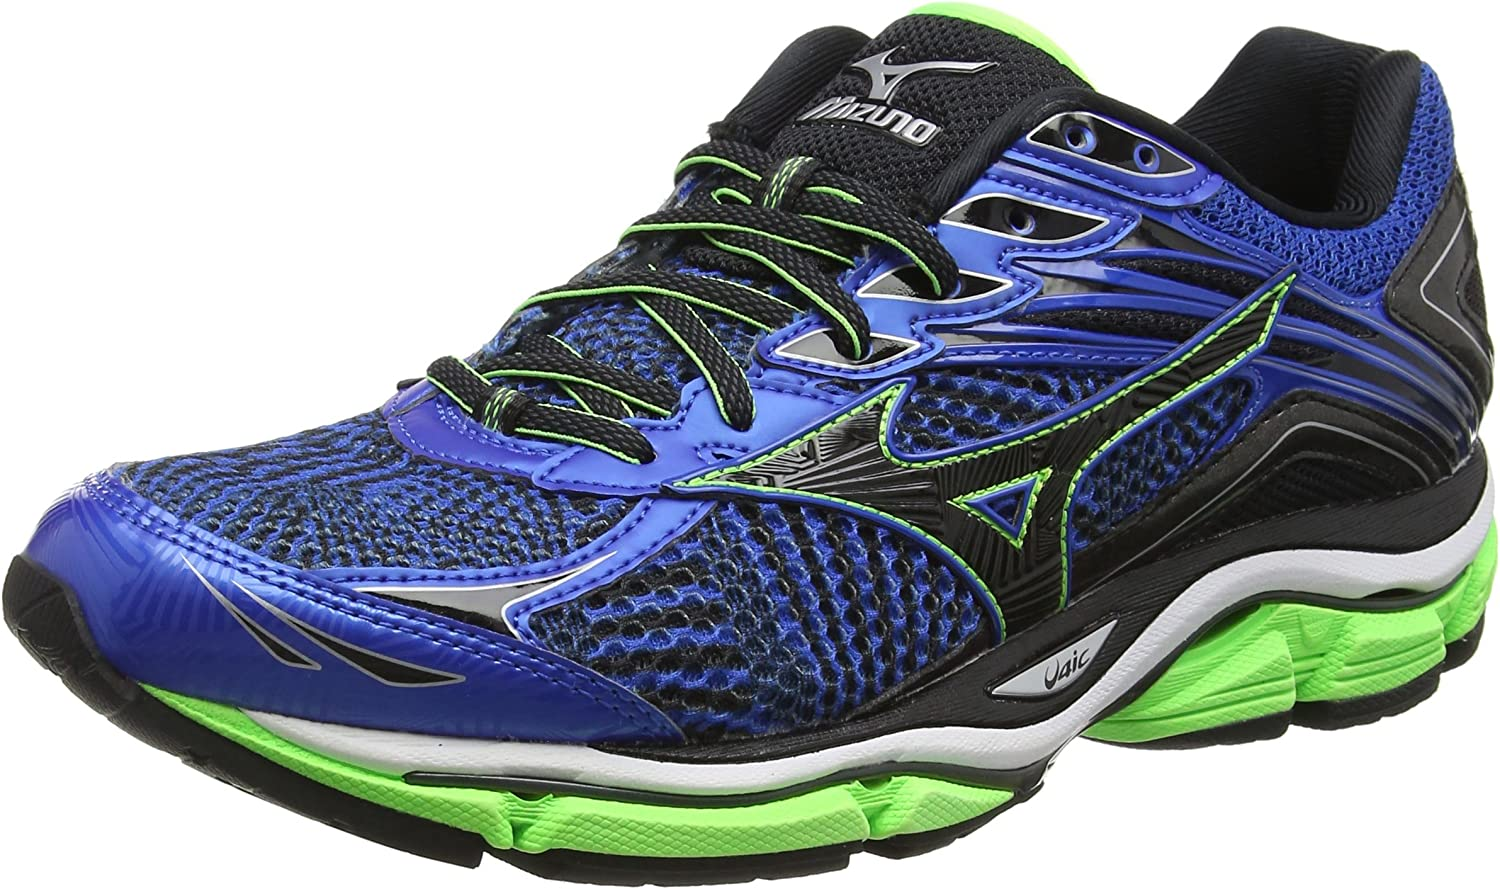 Mizuno Wave Enigma 6 - Zapatillas de running unisex: MainApps: Amazon.es: Zapatos y complementos